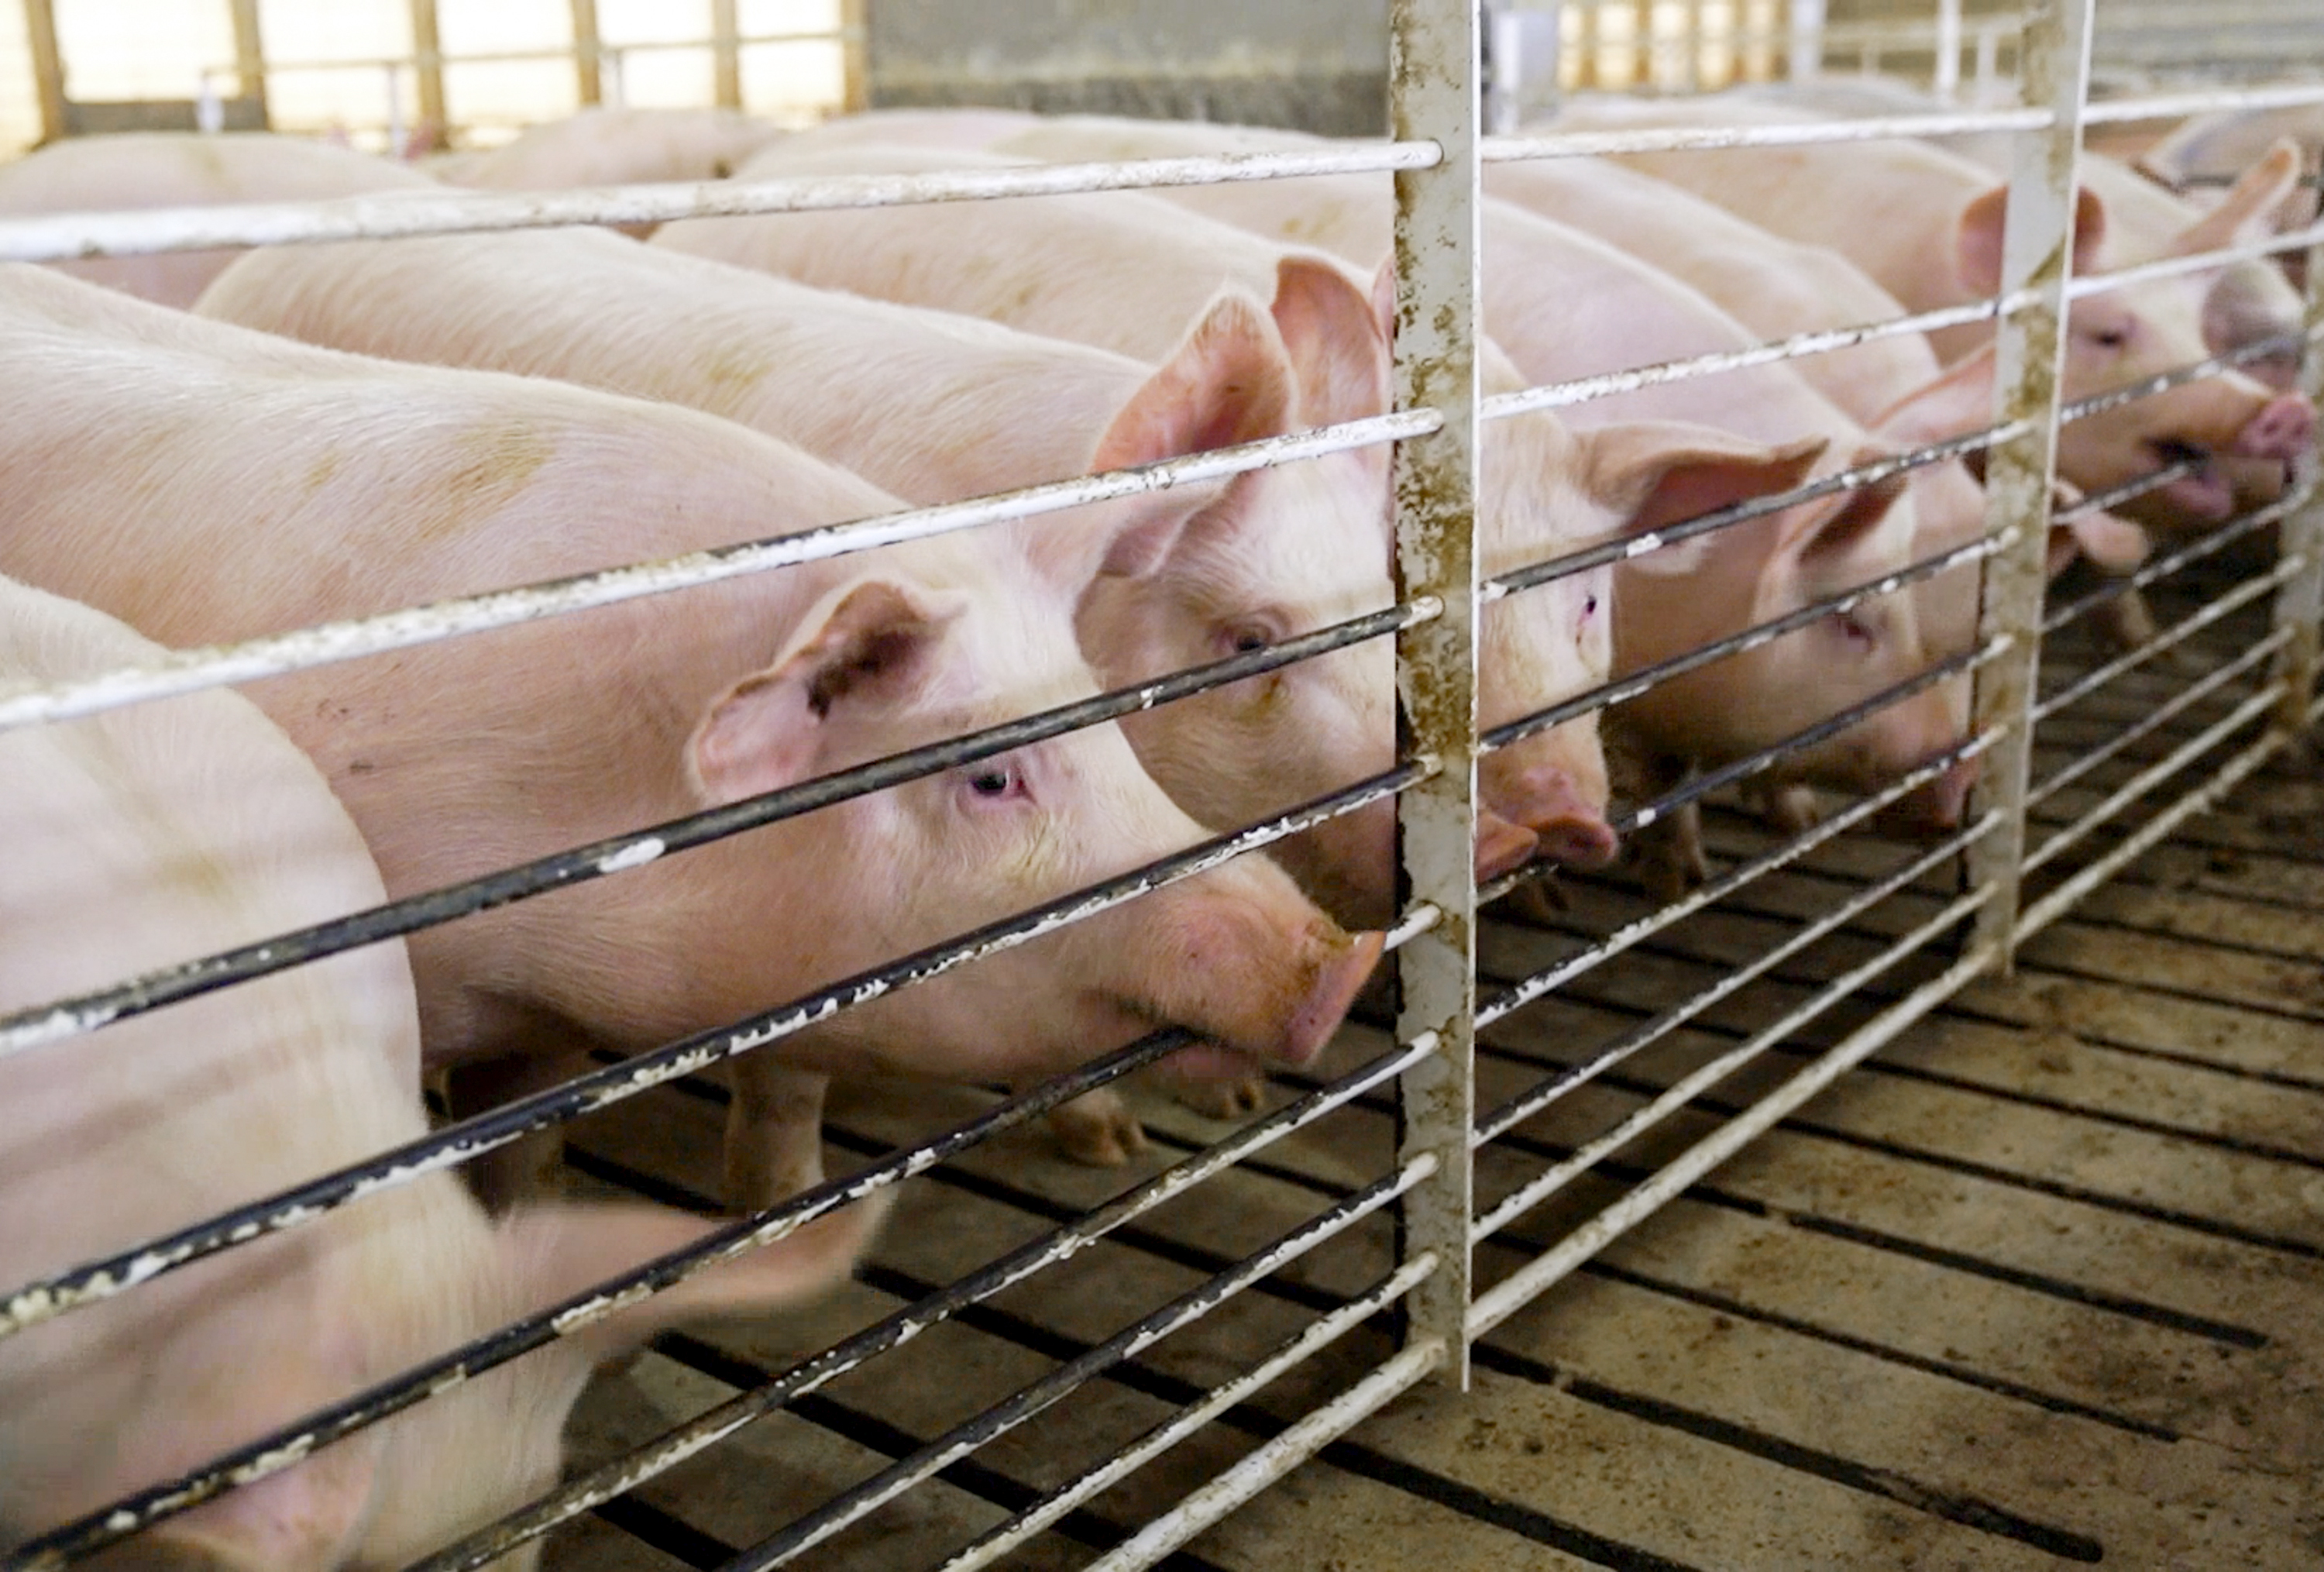 washingtonpost.com - Jeff Stein - Chinese-owned pork producer qualifies for money under Trump's farm bailout